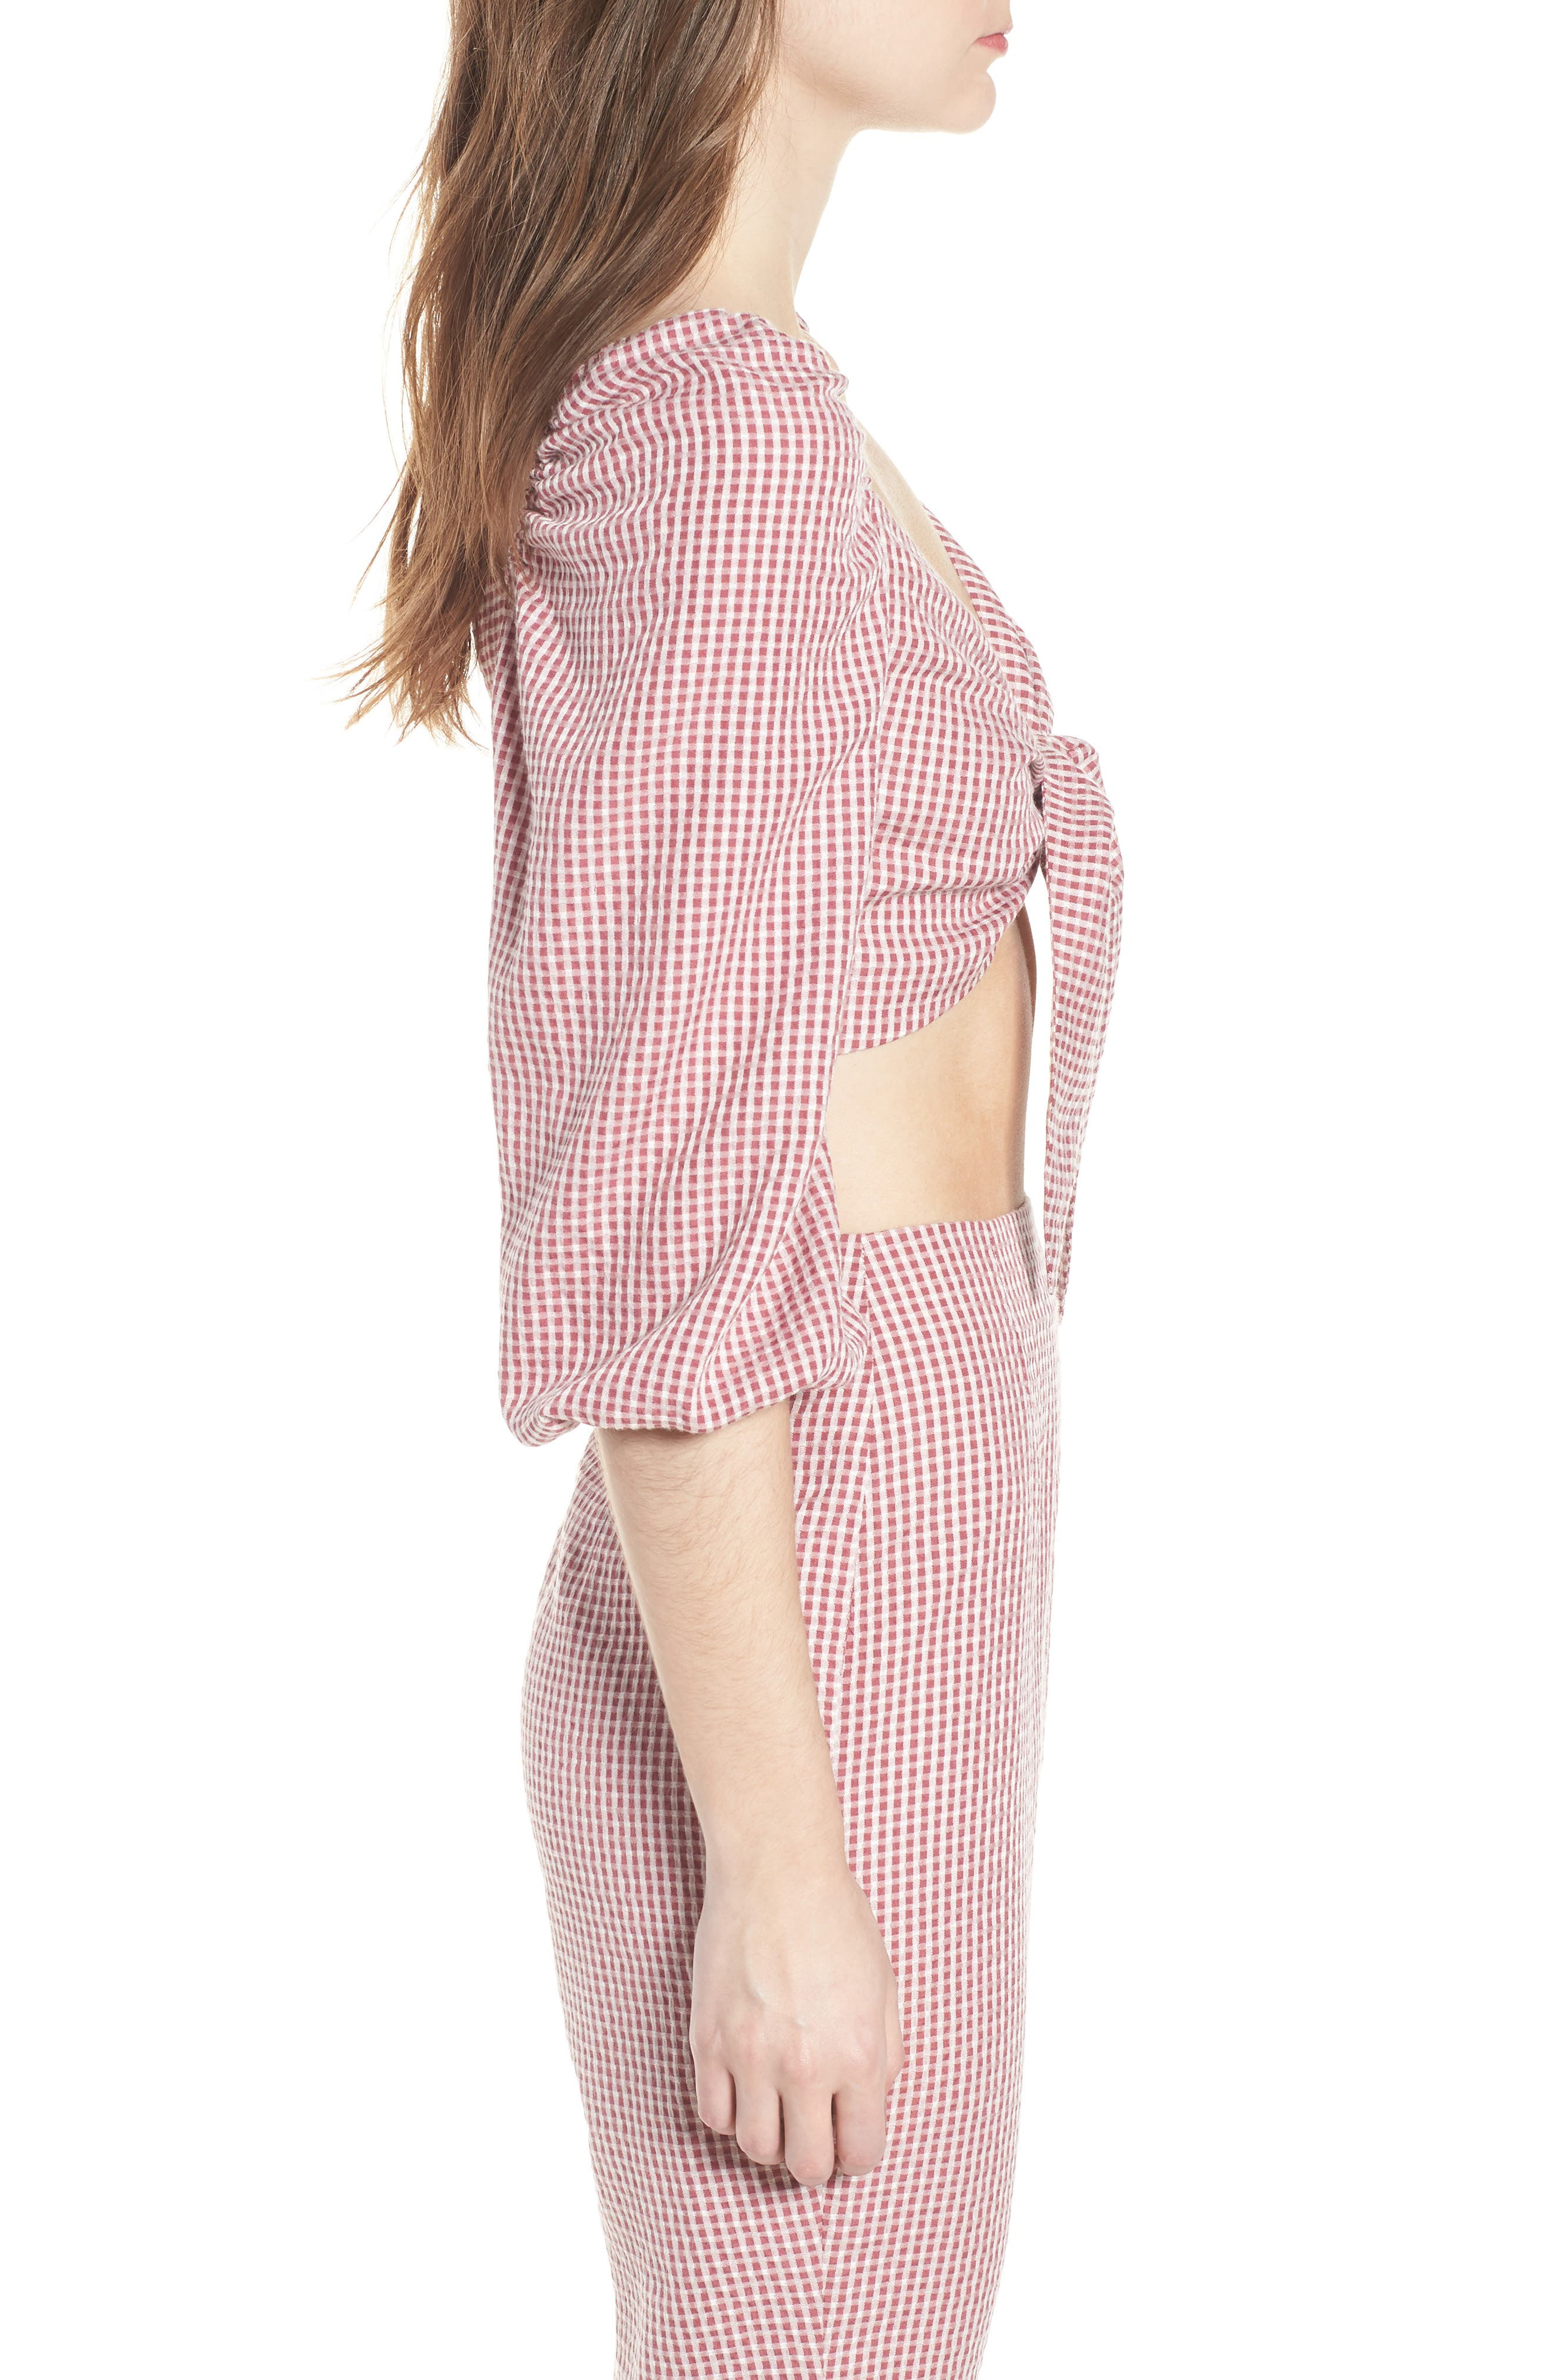 Digby Tie Front Crop Top,                             Alternate thumbnail 4, color,                             Red Gingham